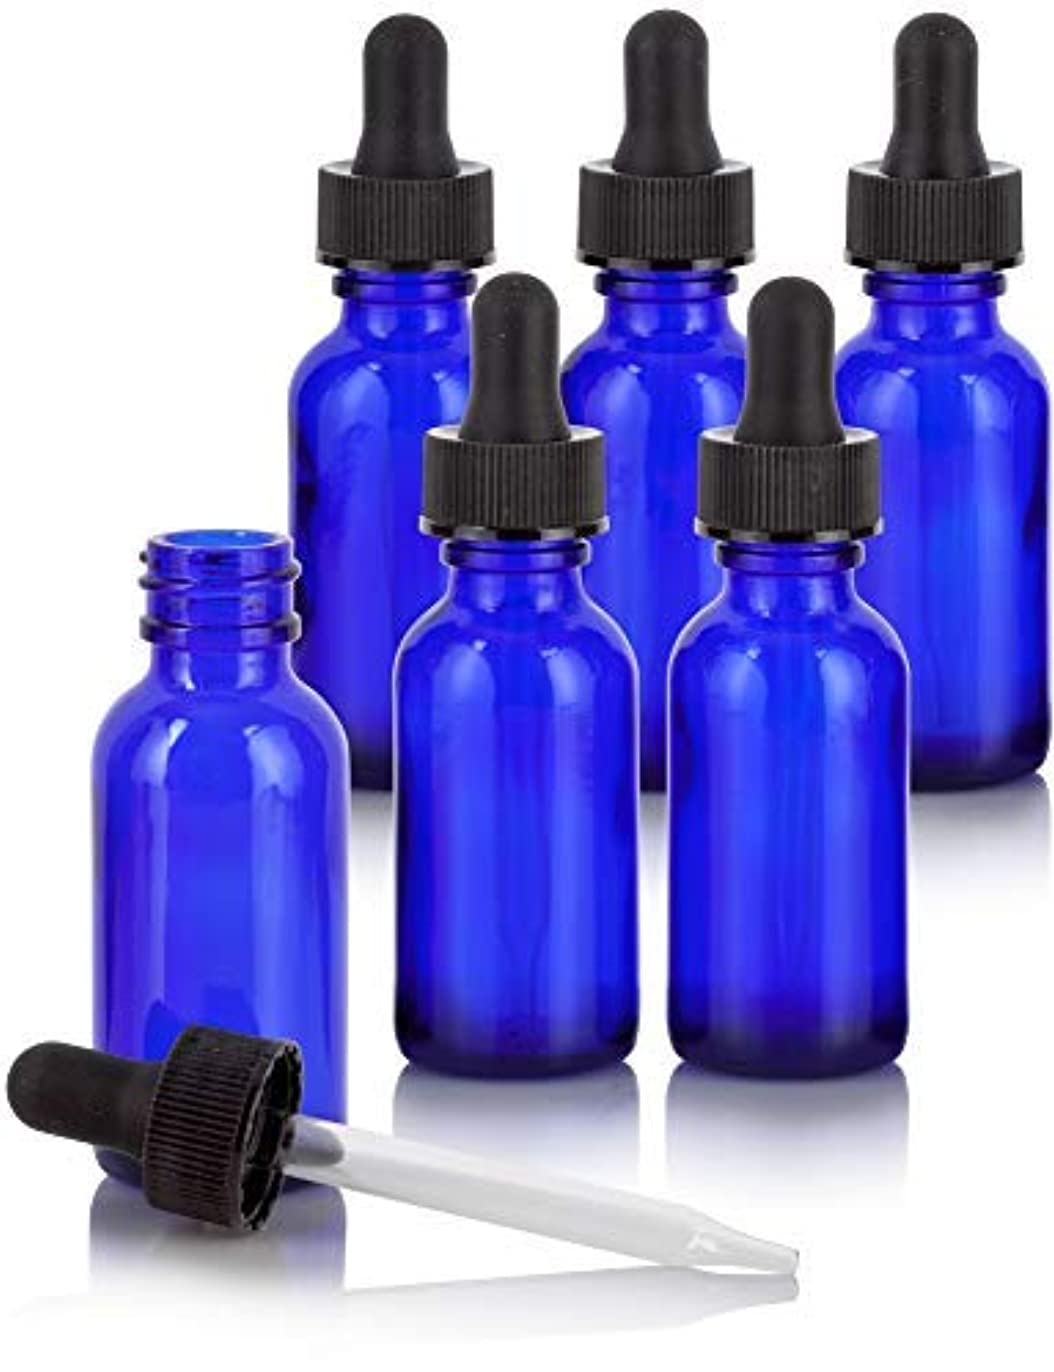 エミュレーション第四指1 oz Cobalt Blue Glass Boston Round Dropper Bottle (6 Pack) + Funnel and Labels for Essential Oils, Aromatherapy...